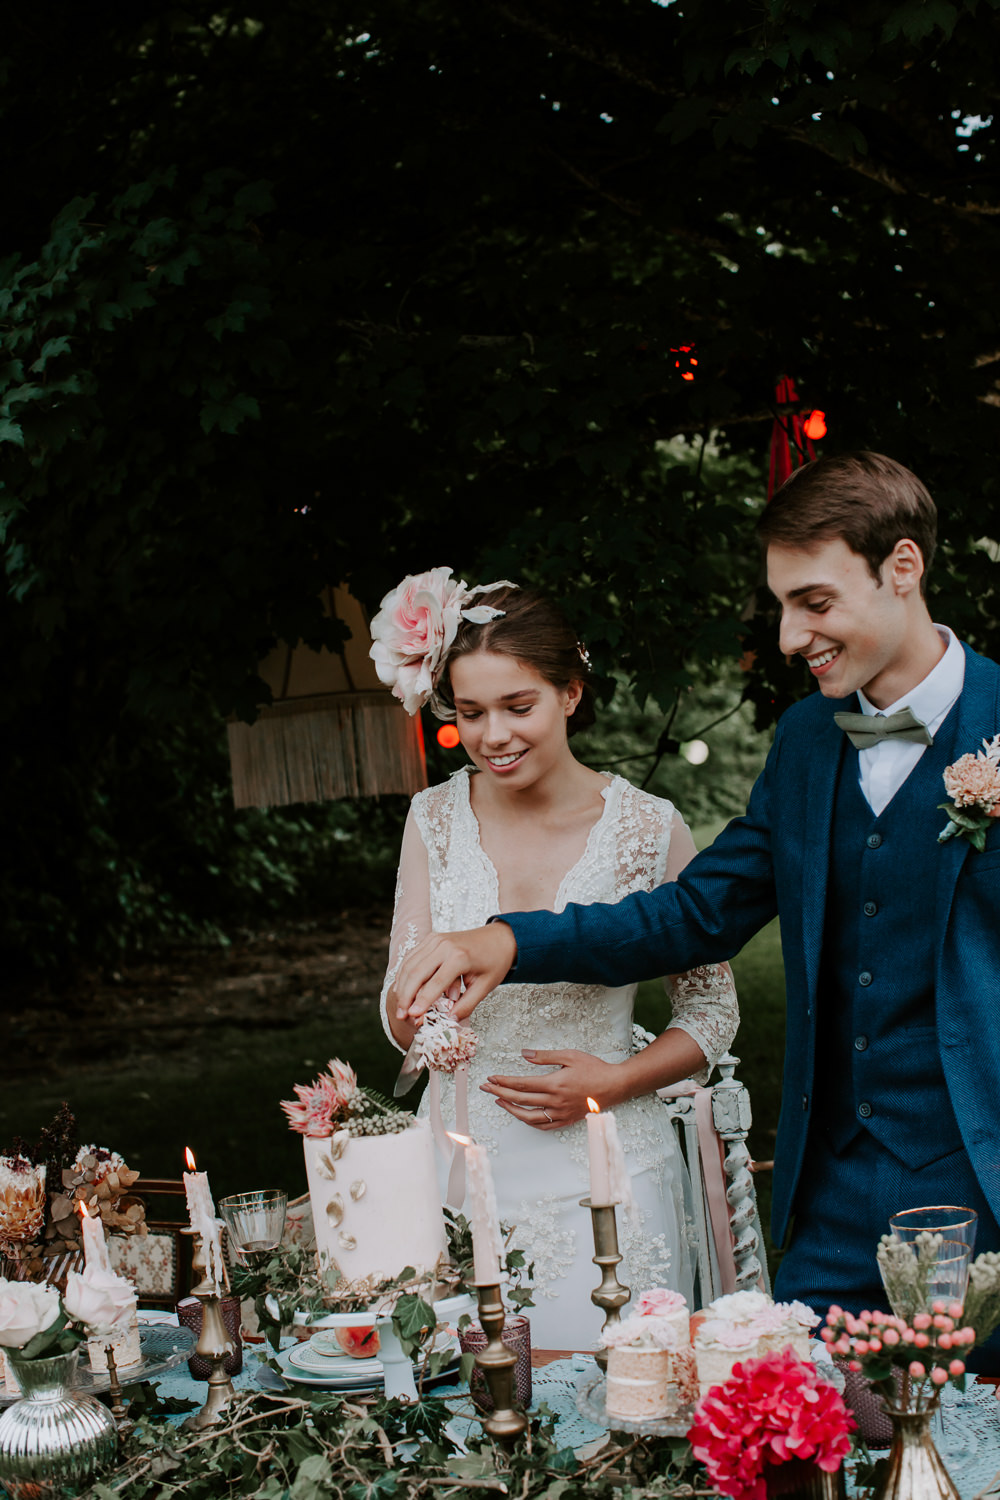 Whimsical Wedding Ideas Charlotte Lucy Photography